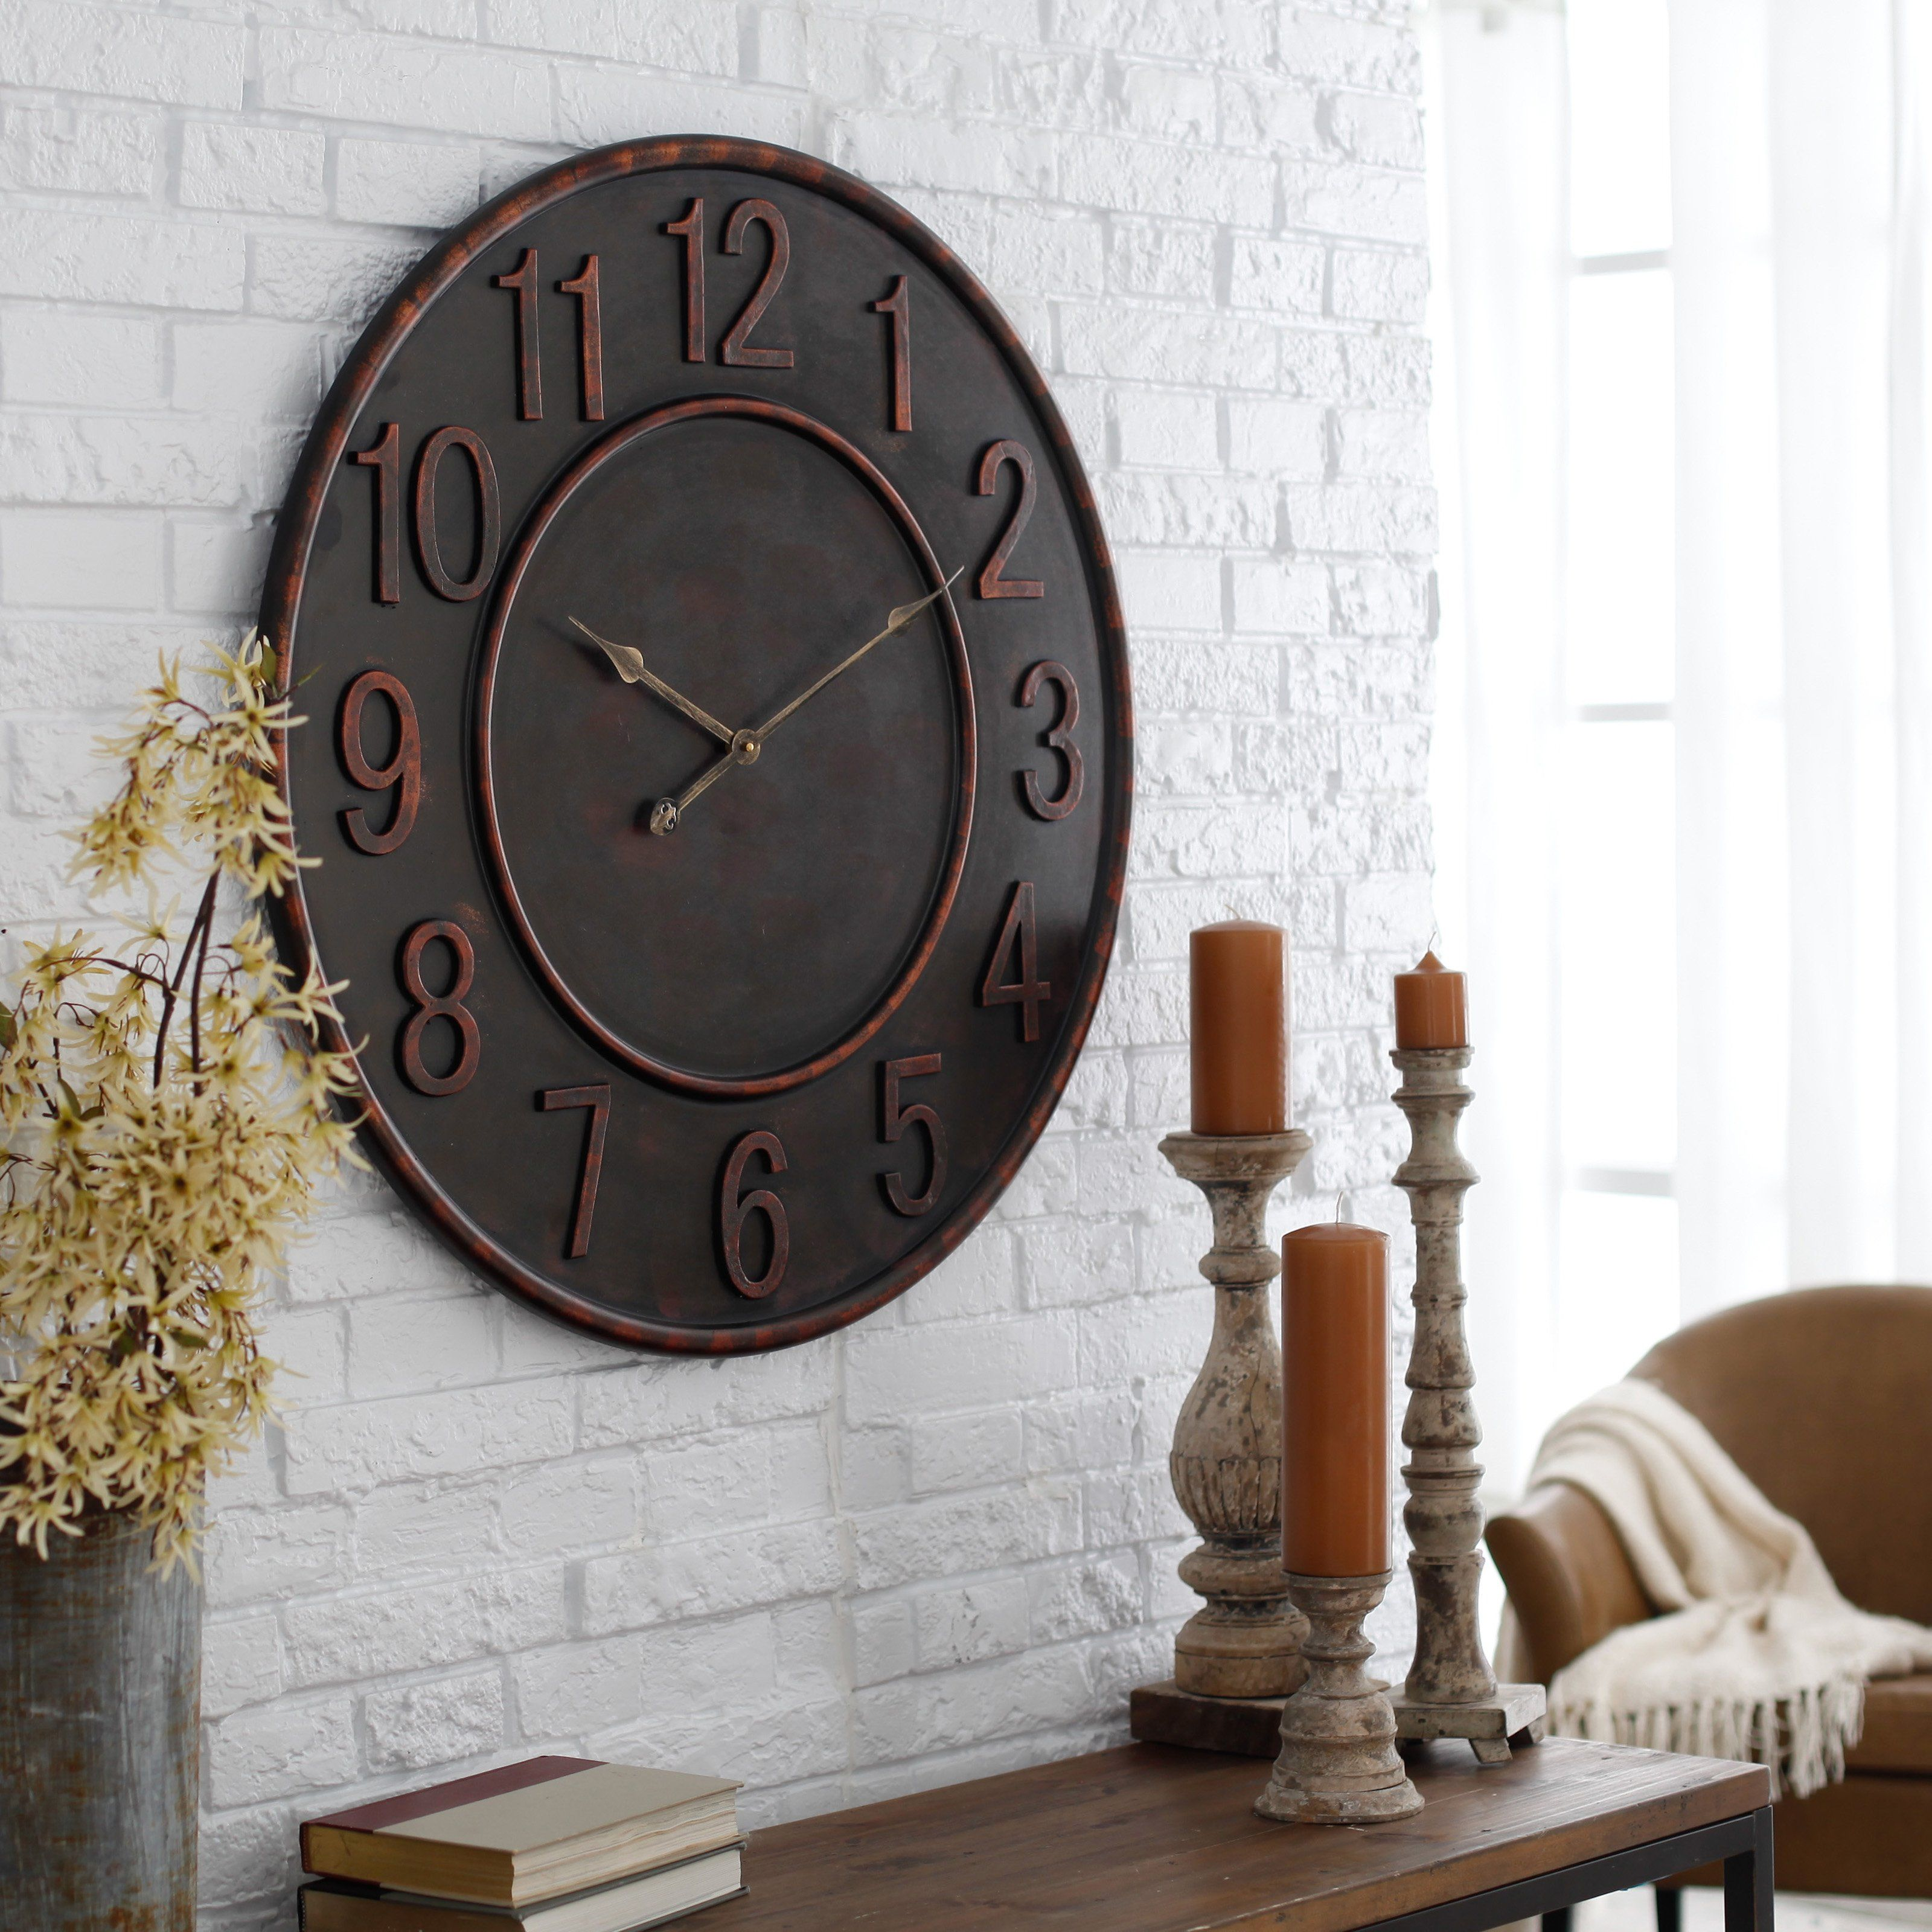 Have To Have It Cooper Classics Kirk 31 5 In Wall Clock 162 00 Wall Clock Clock Clock Decor